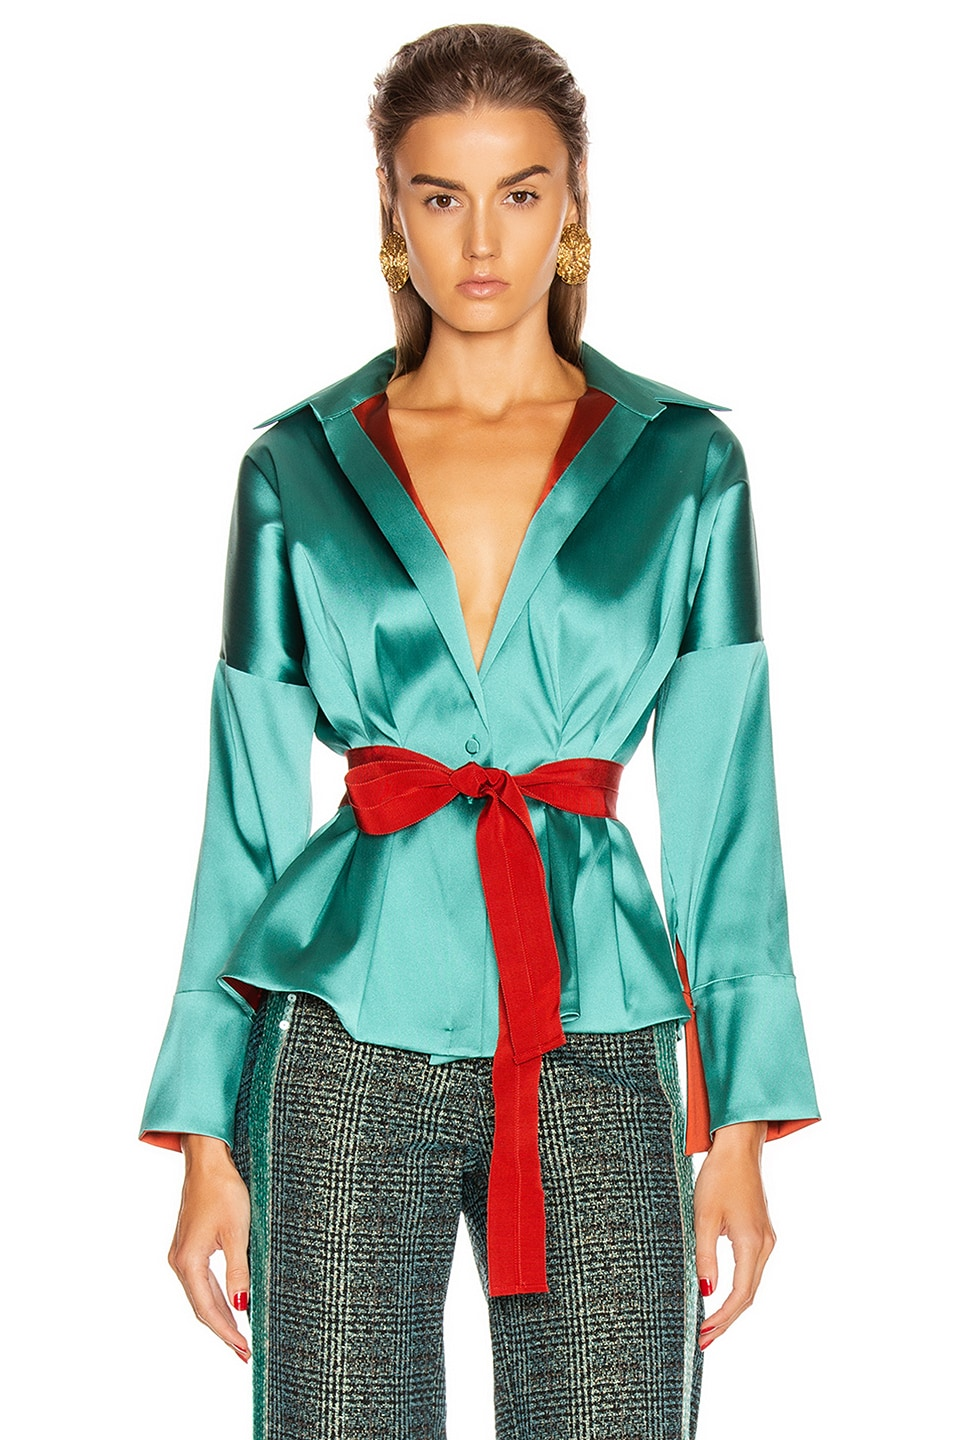 Image 1 of SILVIA TCHERASSI Destiny Top in Teal